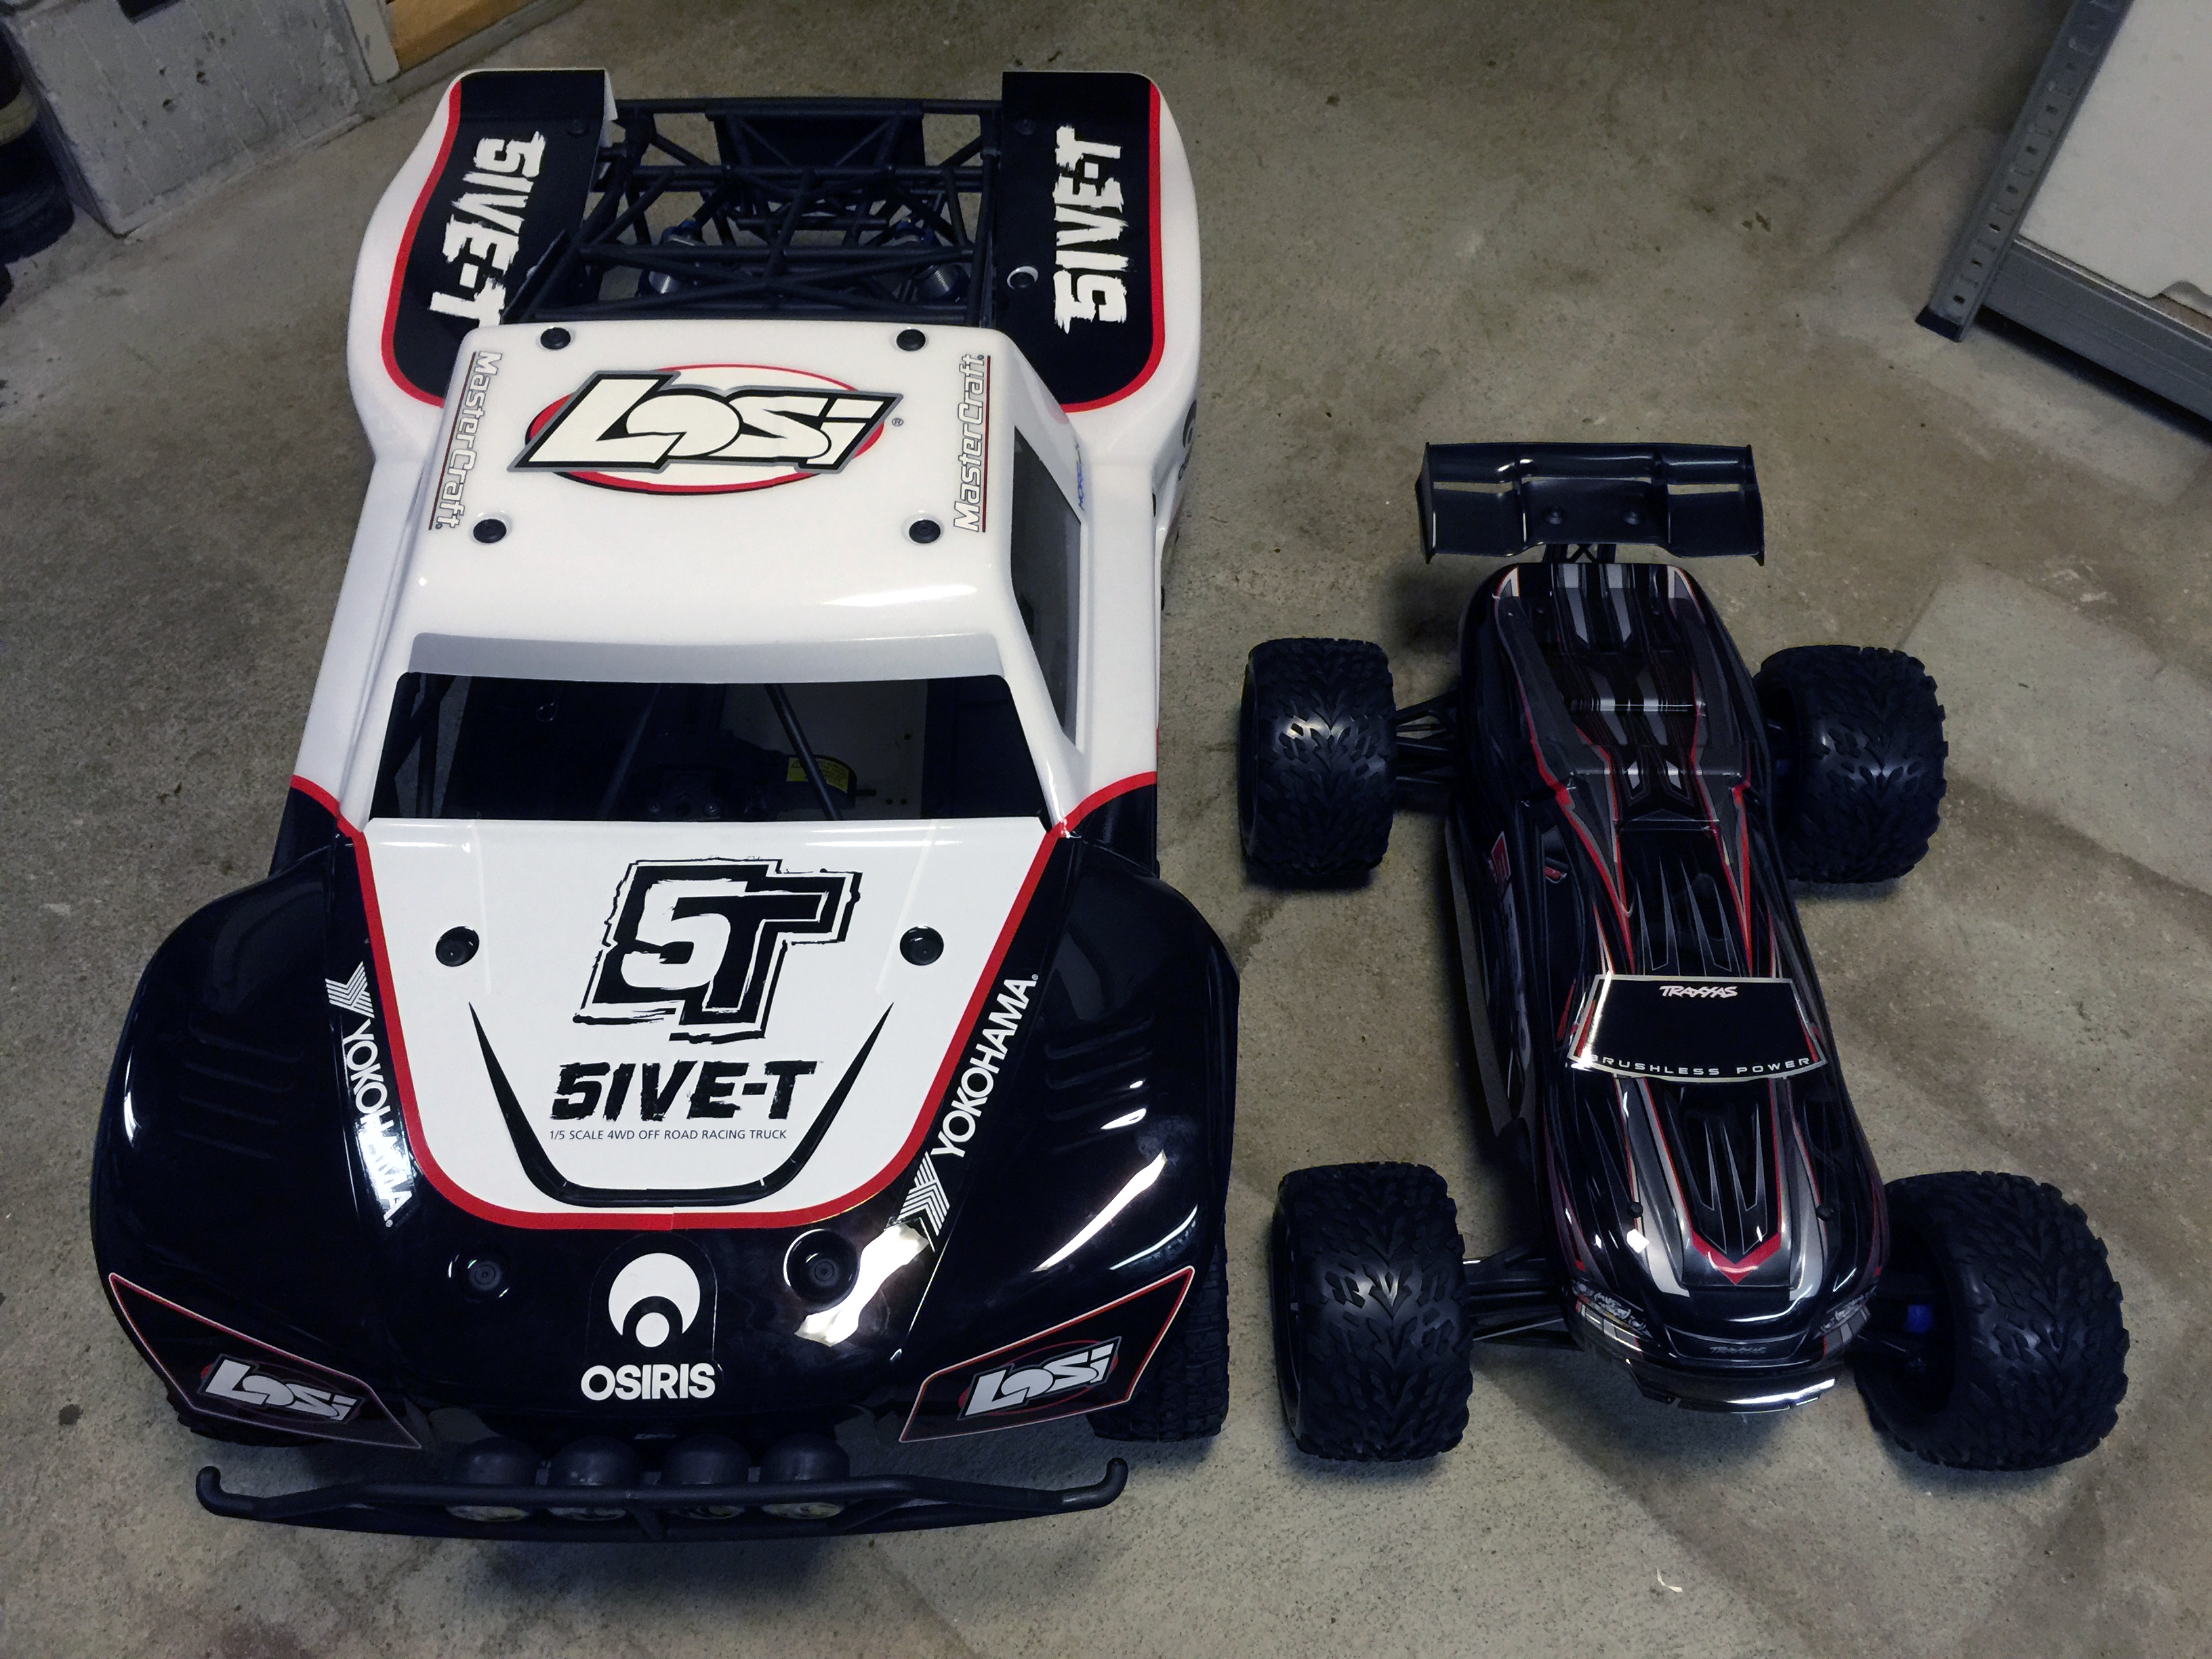 best brushless monster truck with Traxxas E Revo Brushless Best Round Rc Car Money Can Buy  Ment 10141 on Traxxas E Revo Brushless Best Round Rc Car Money Can Buy  ment 10141 in addition Xray Xb8e 18 Electric Buggy as well Traxxas E Maxx Parts Diagram additionally Rc 15 Brushless Monster Truck further Traxxas Slash Wallpaper.